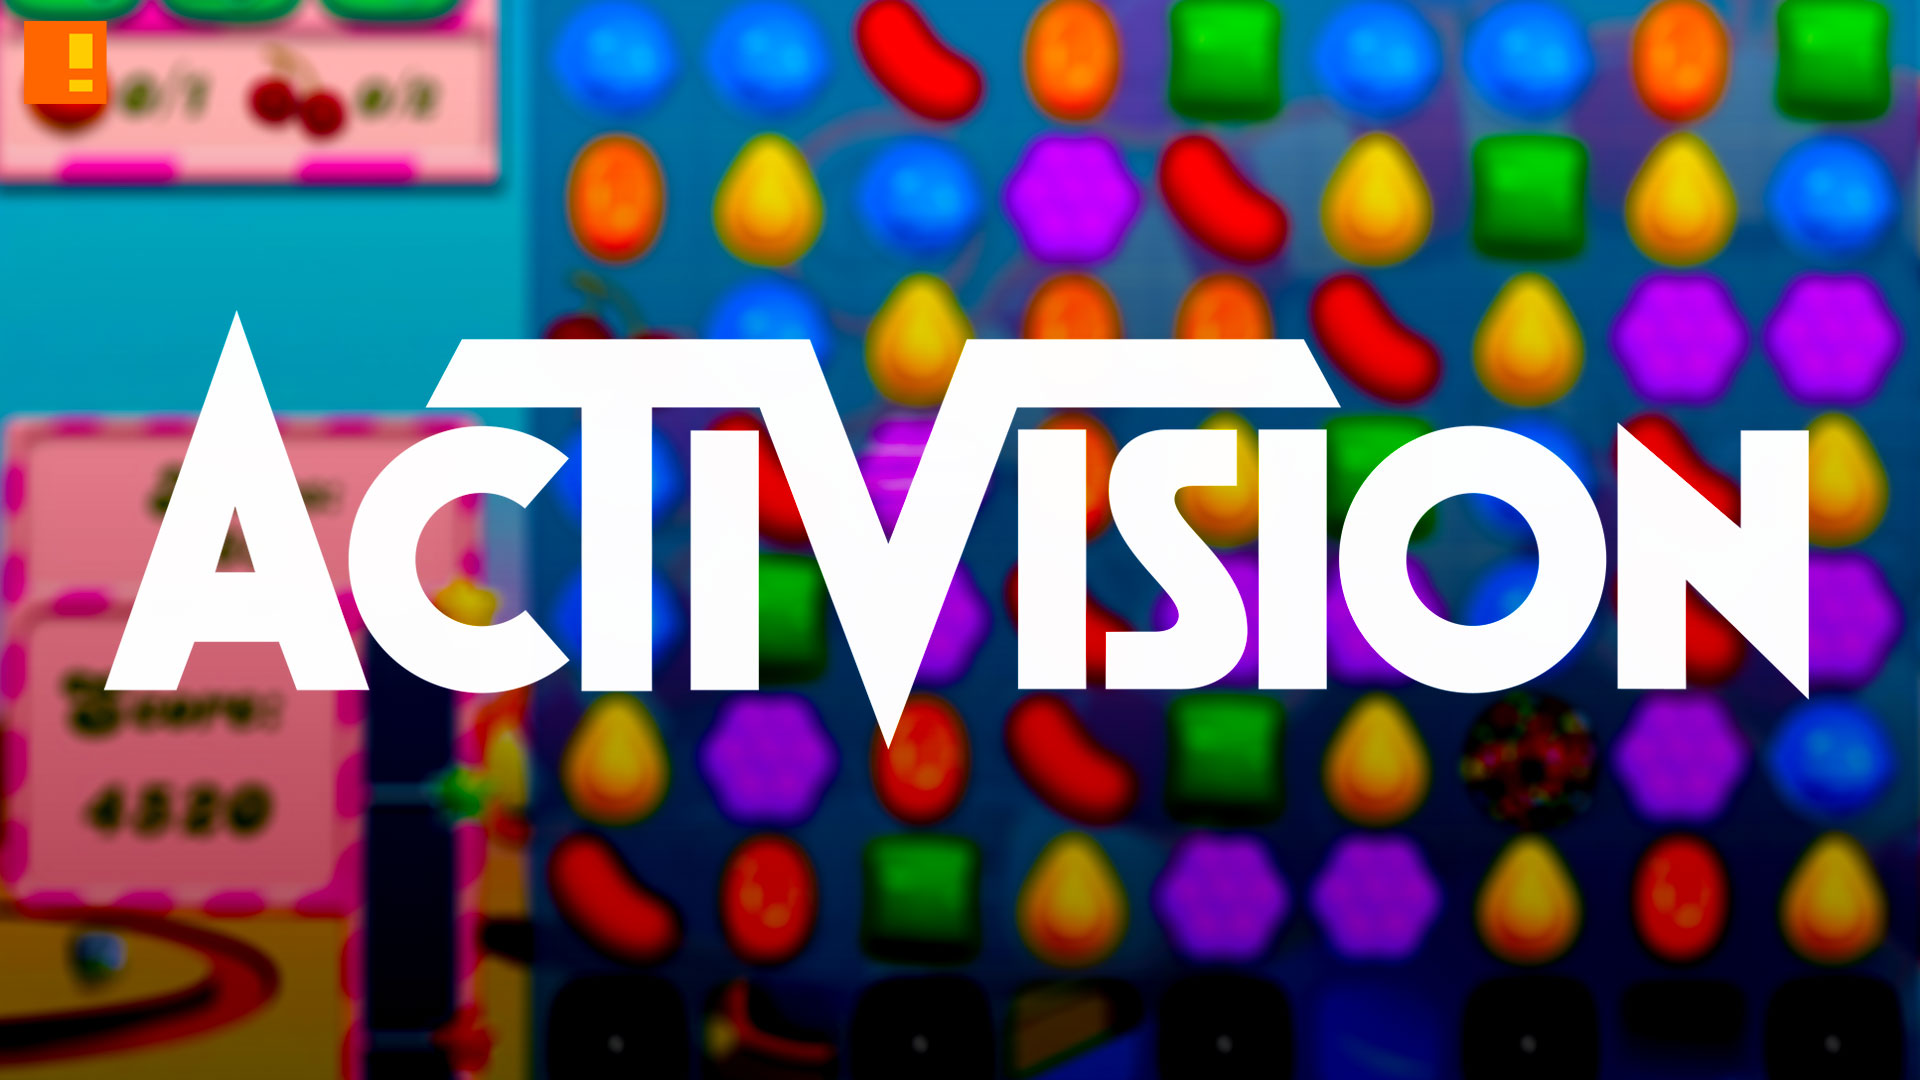 activision. king. candy crush. entertainment on tap. the action pixel. @theactionpixel